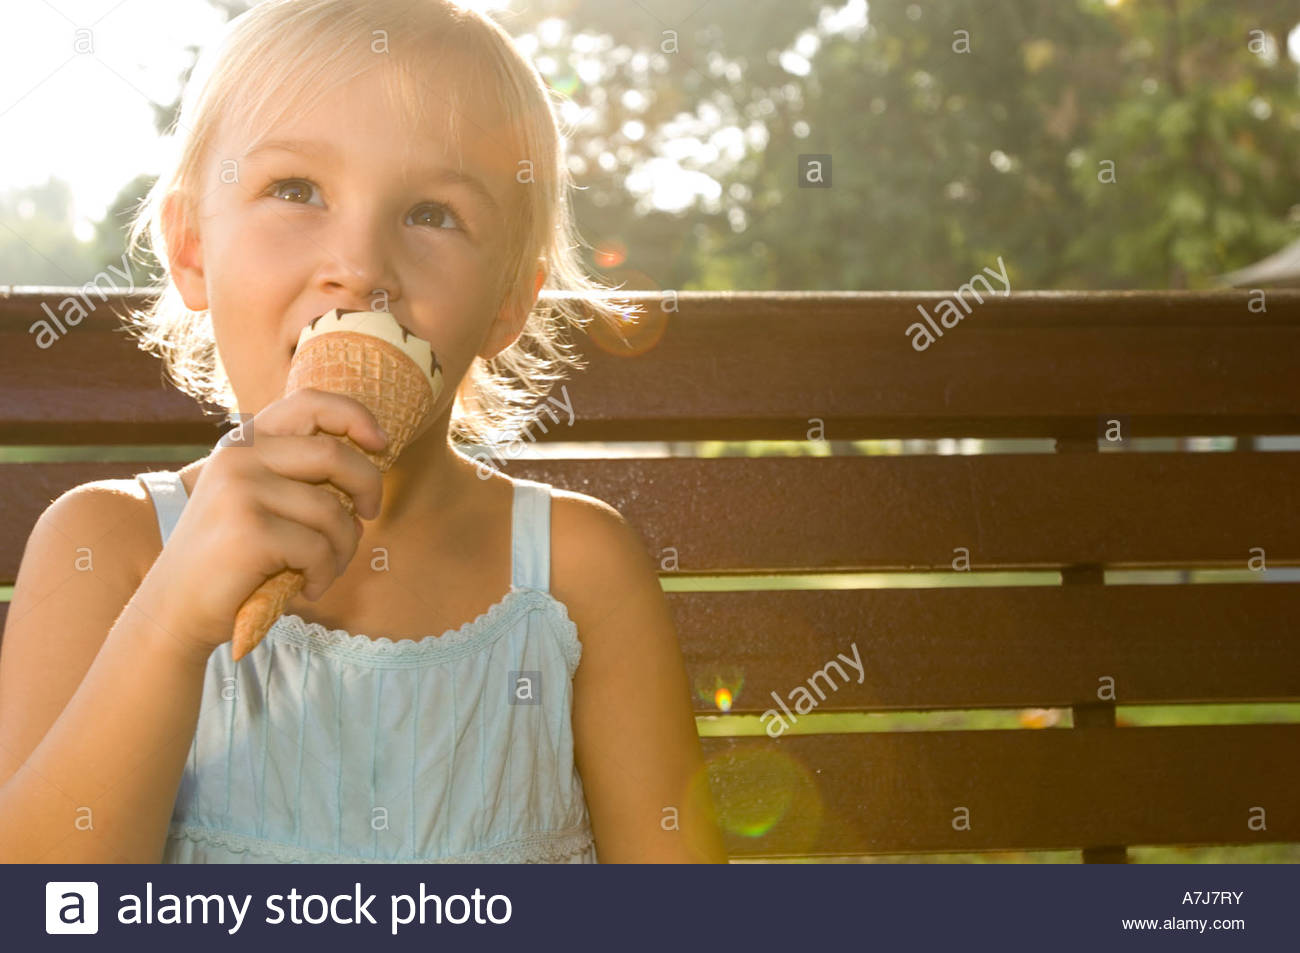 A young girl eating an ice cream - Stock Image